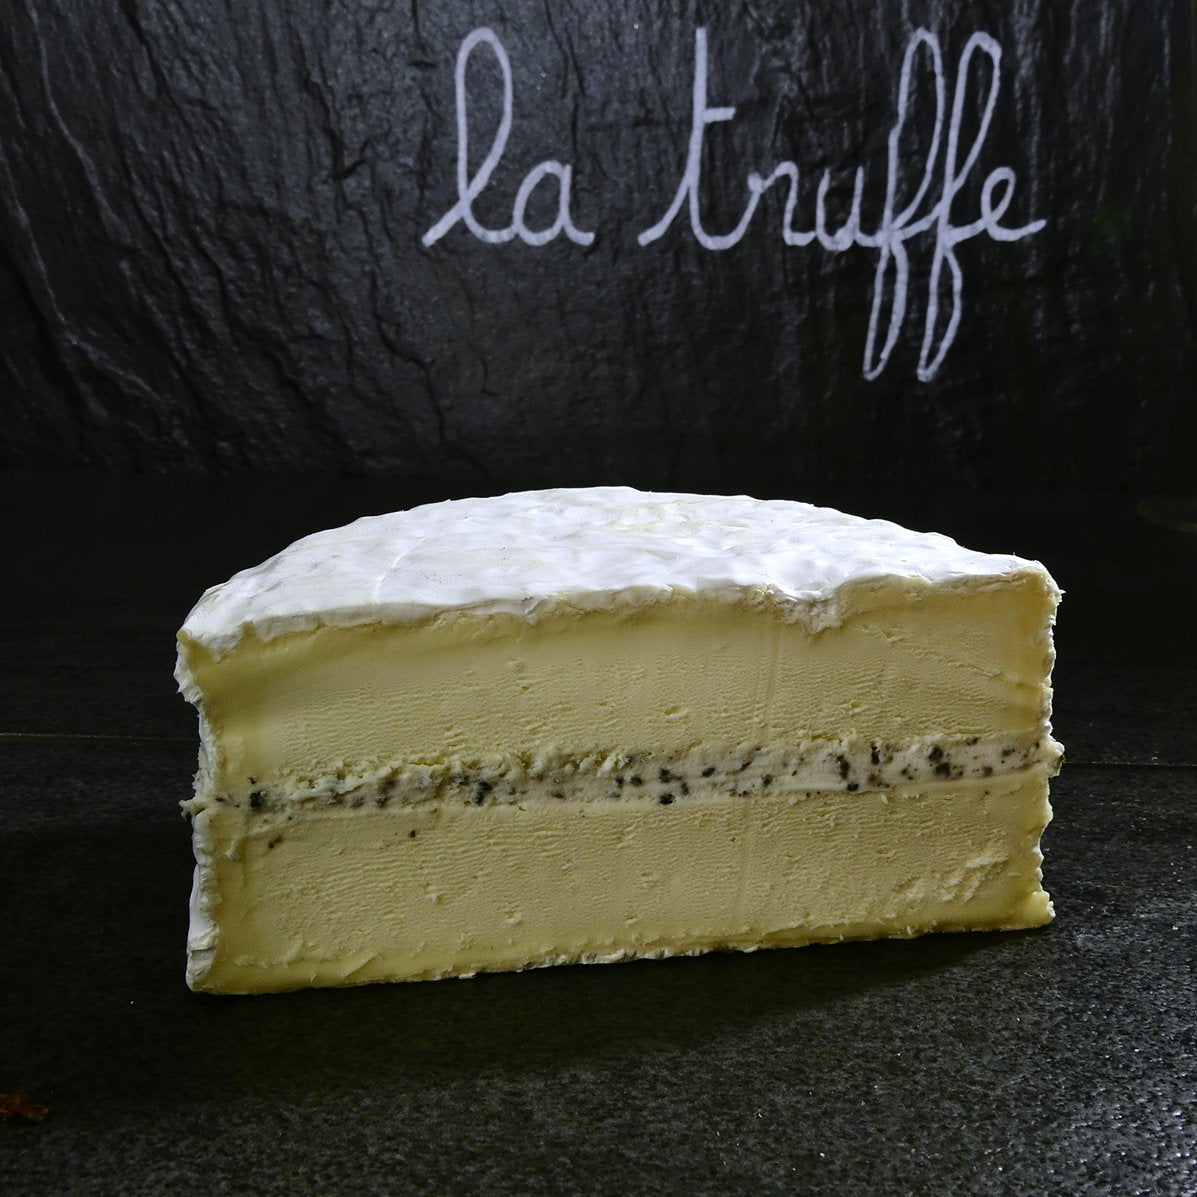 Brillat-Savarin truffé - Fabrication maison - Dégustation